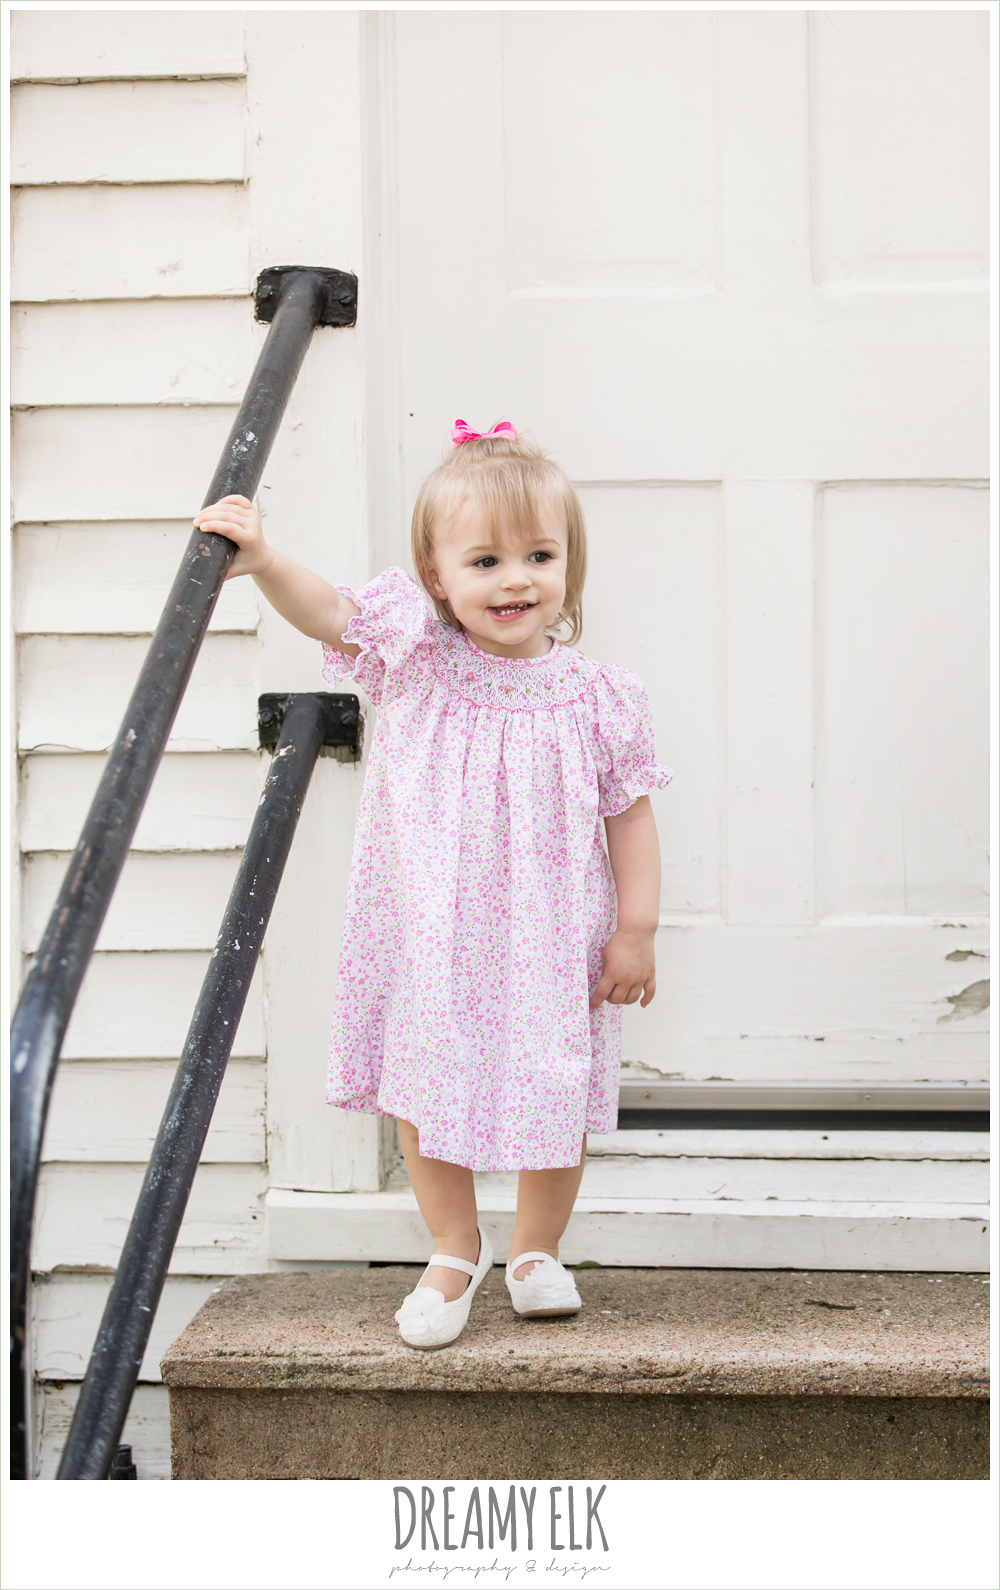 18 month old photo, photo of girl toddler outside